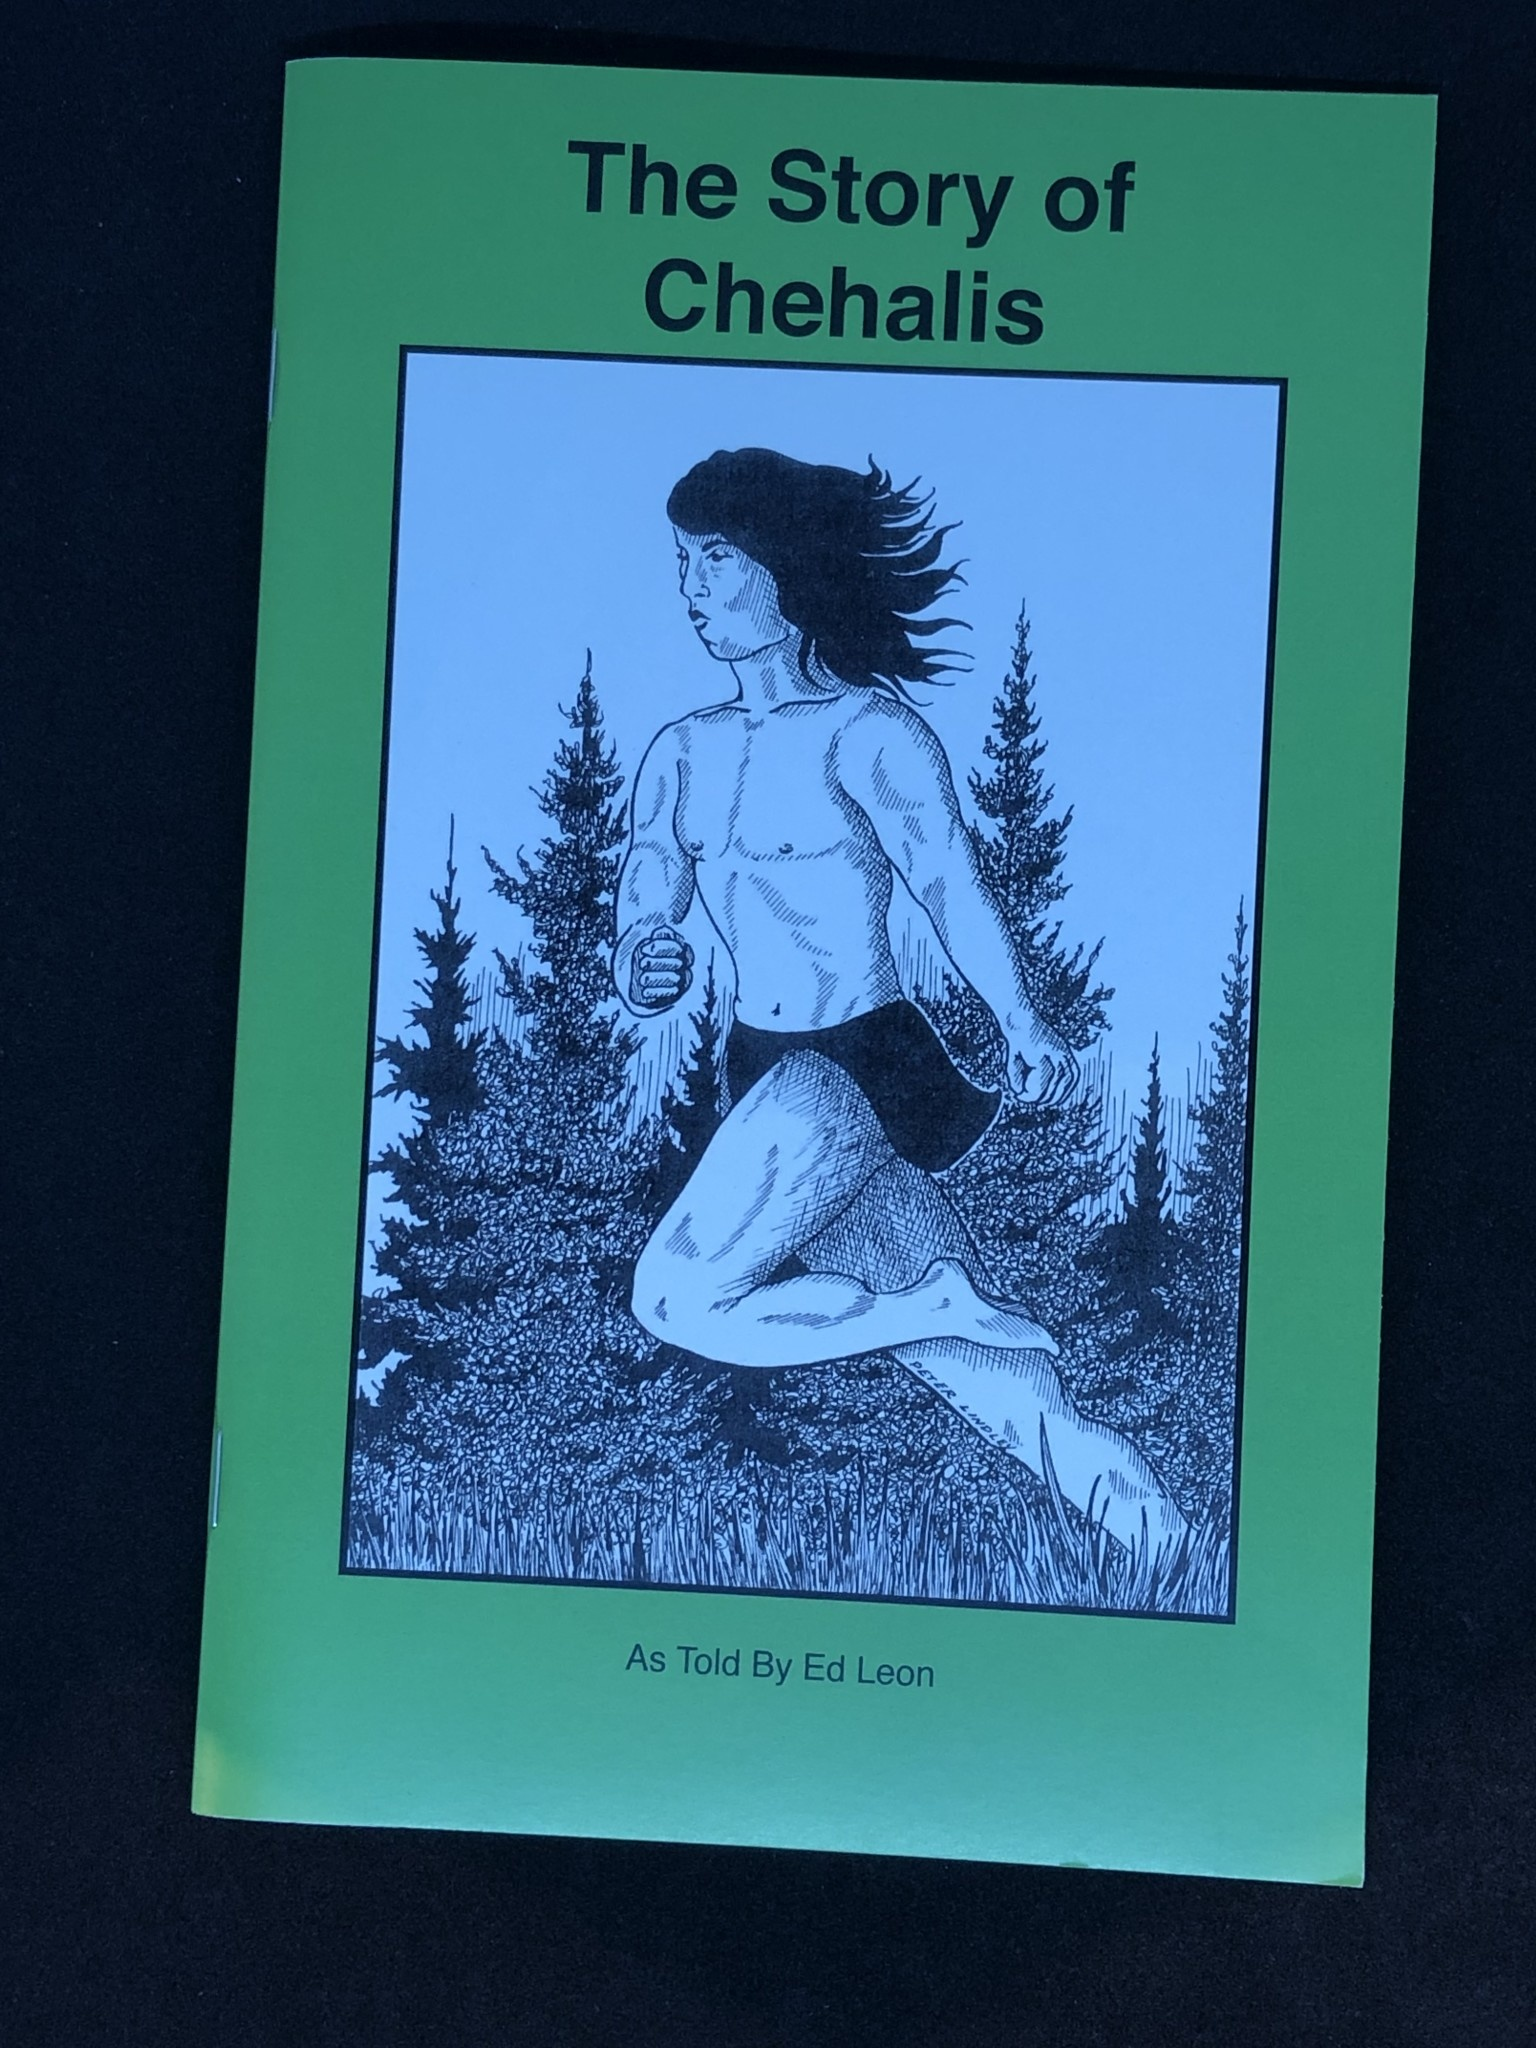 Book-The story of Chehalis-1